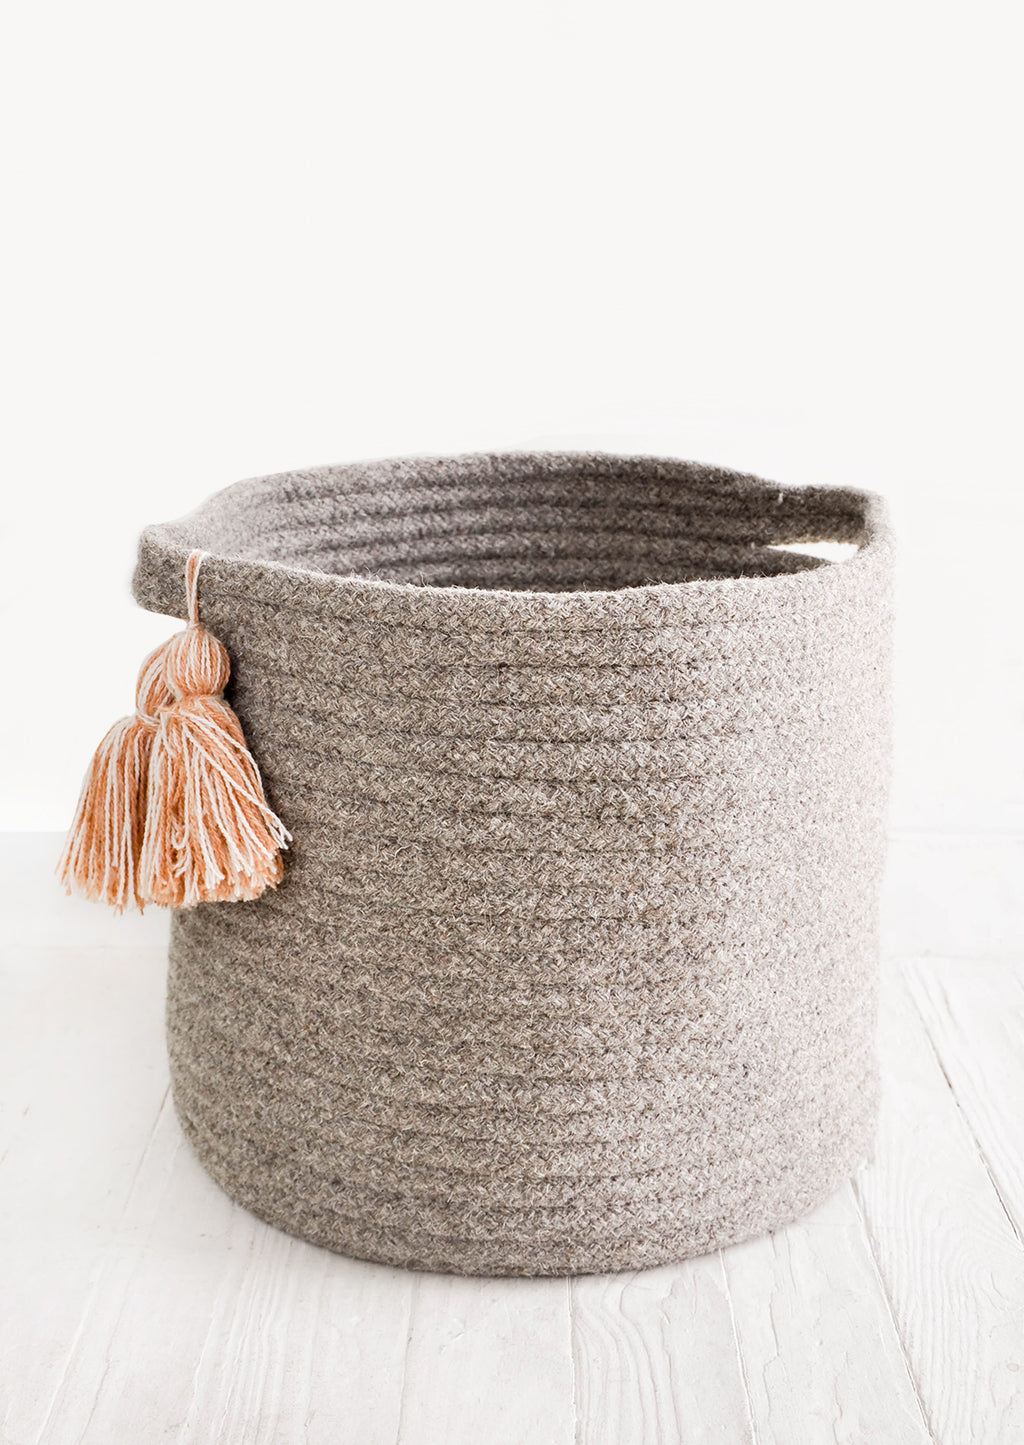 Medium / Taupe: Round, low storage bin in natural wool. Handles at sides with oversized tassel detail.